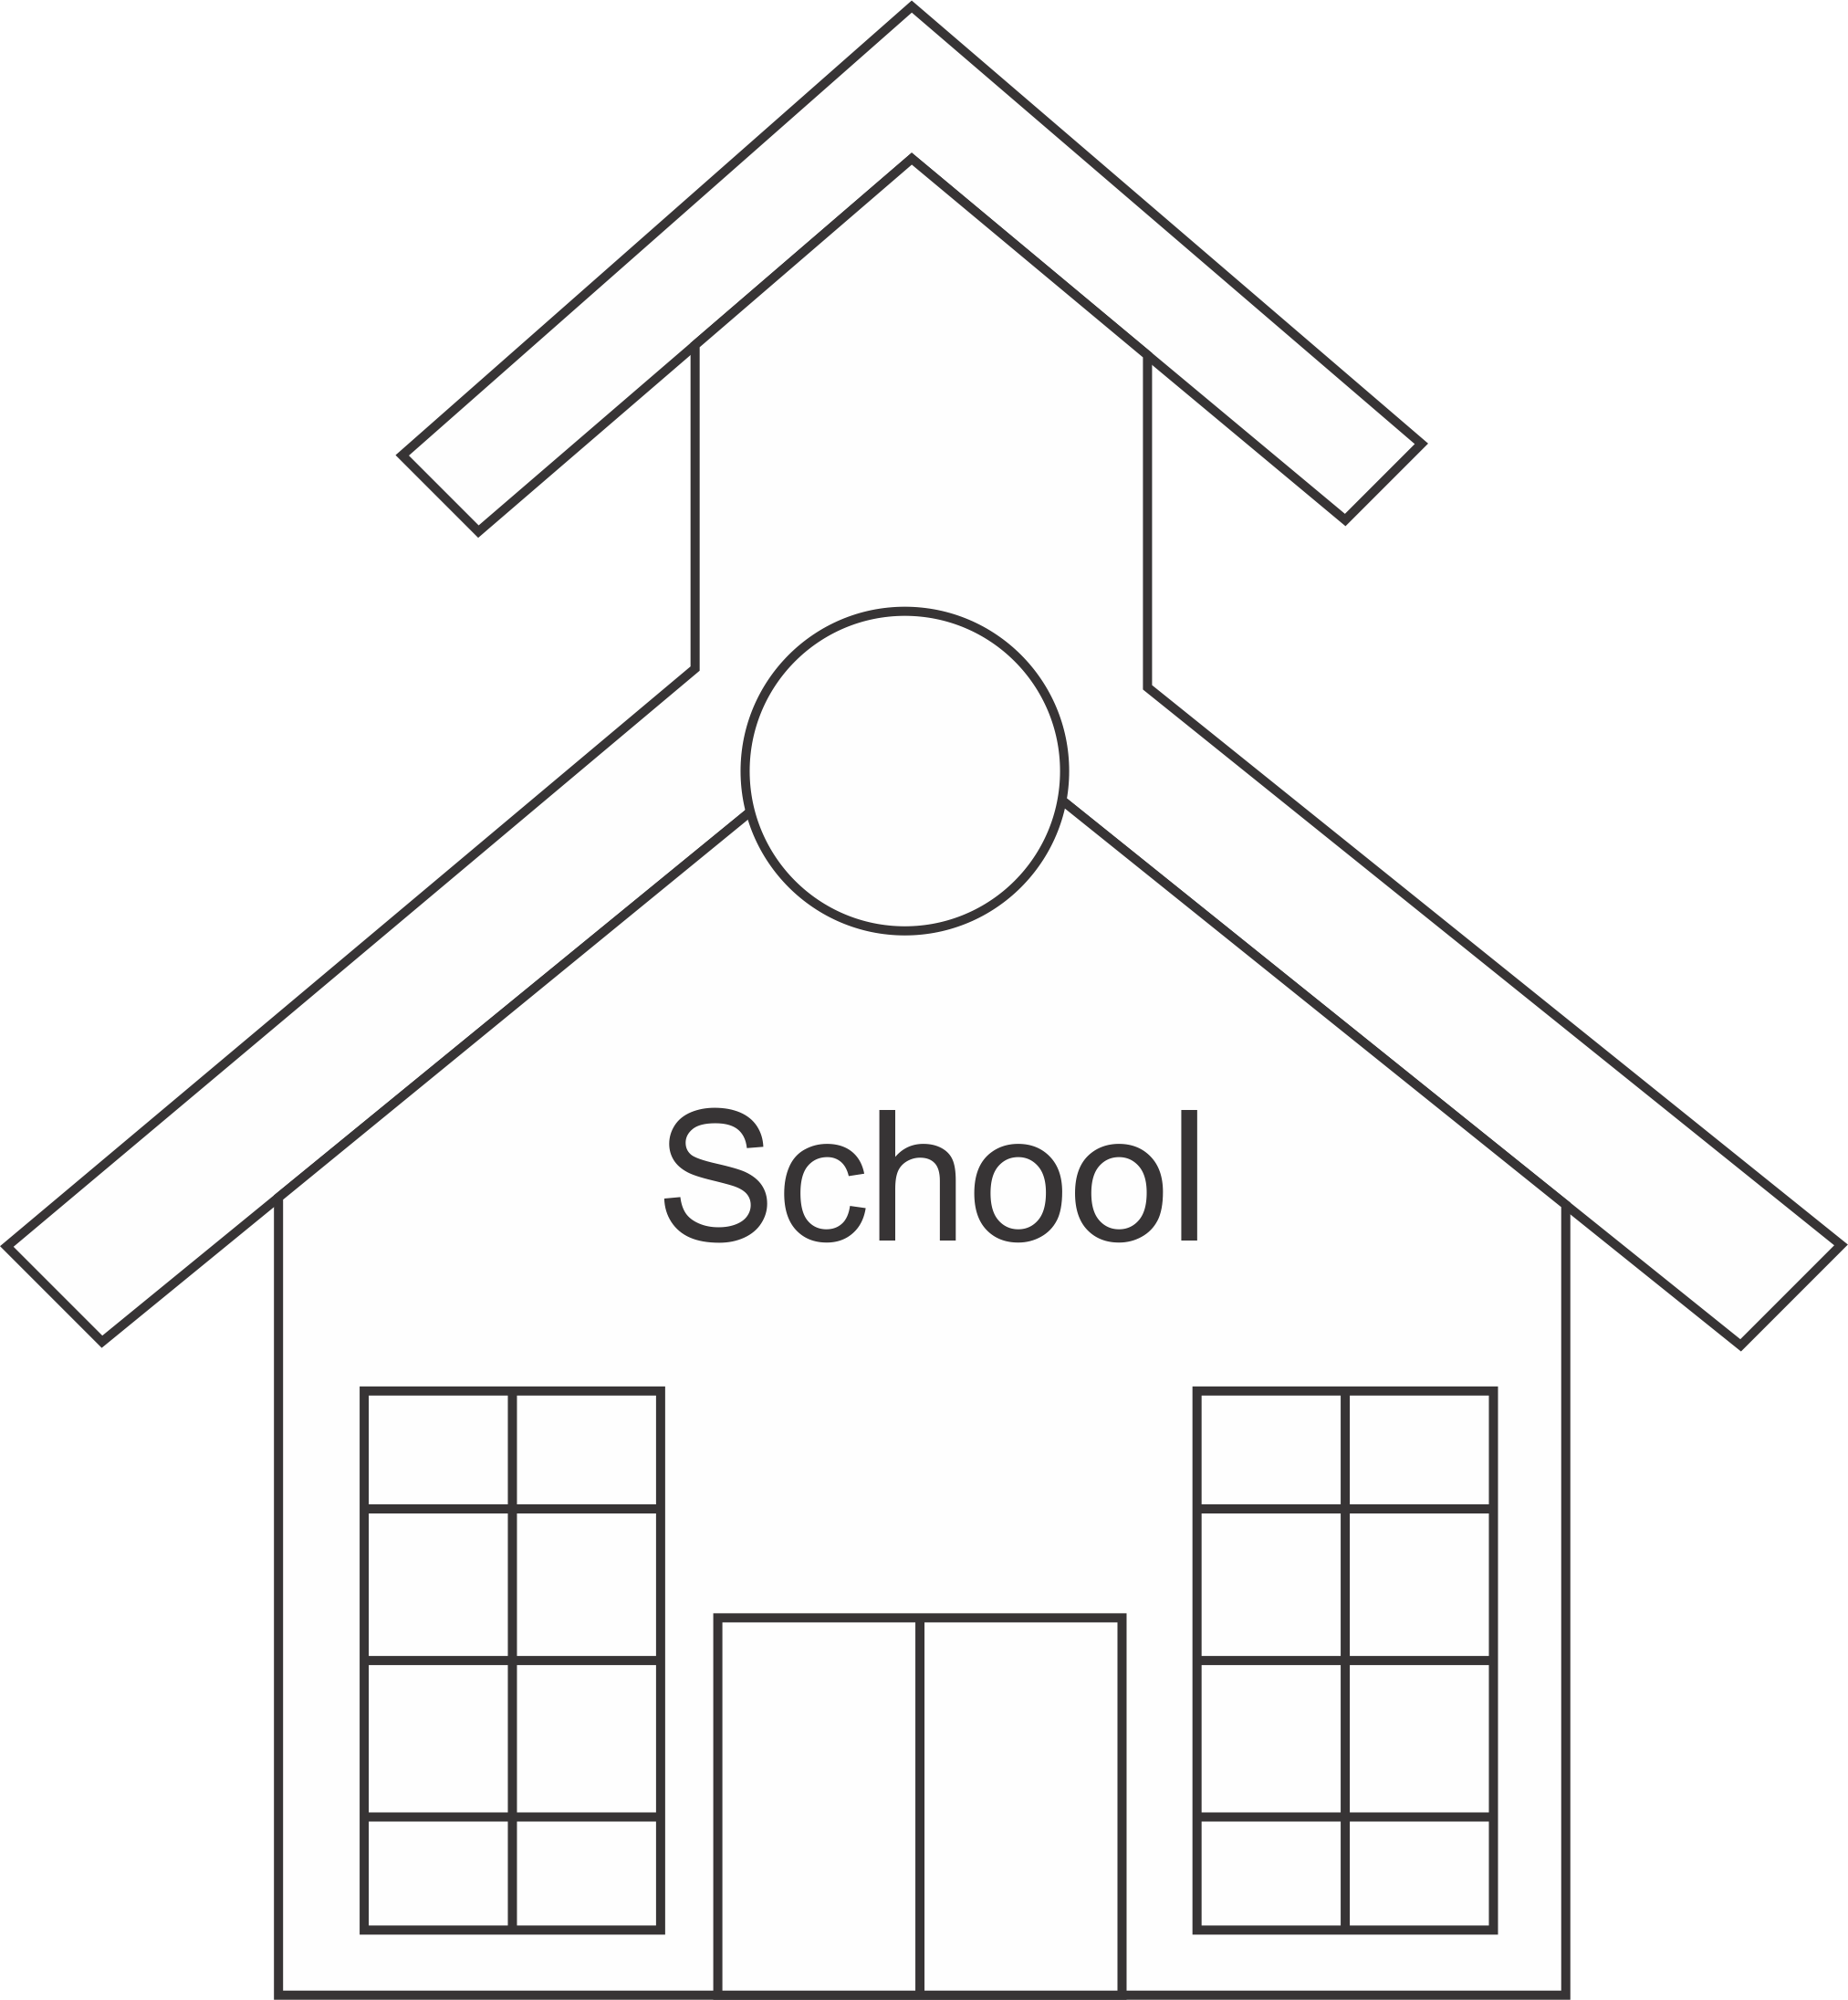 free black and white school house clipart - photo #10